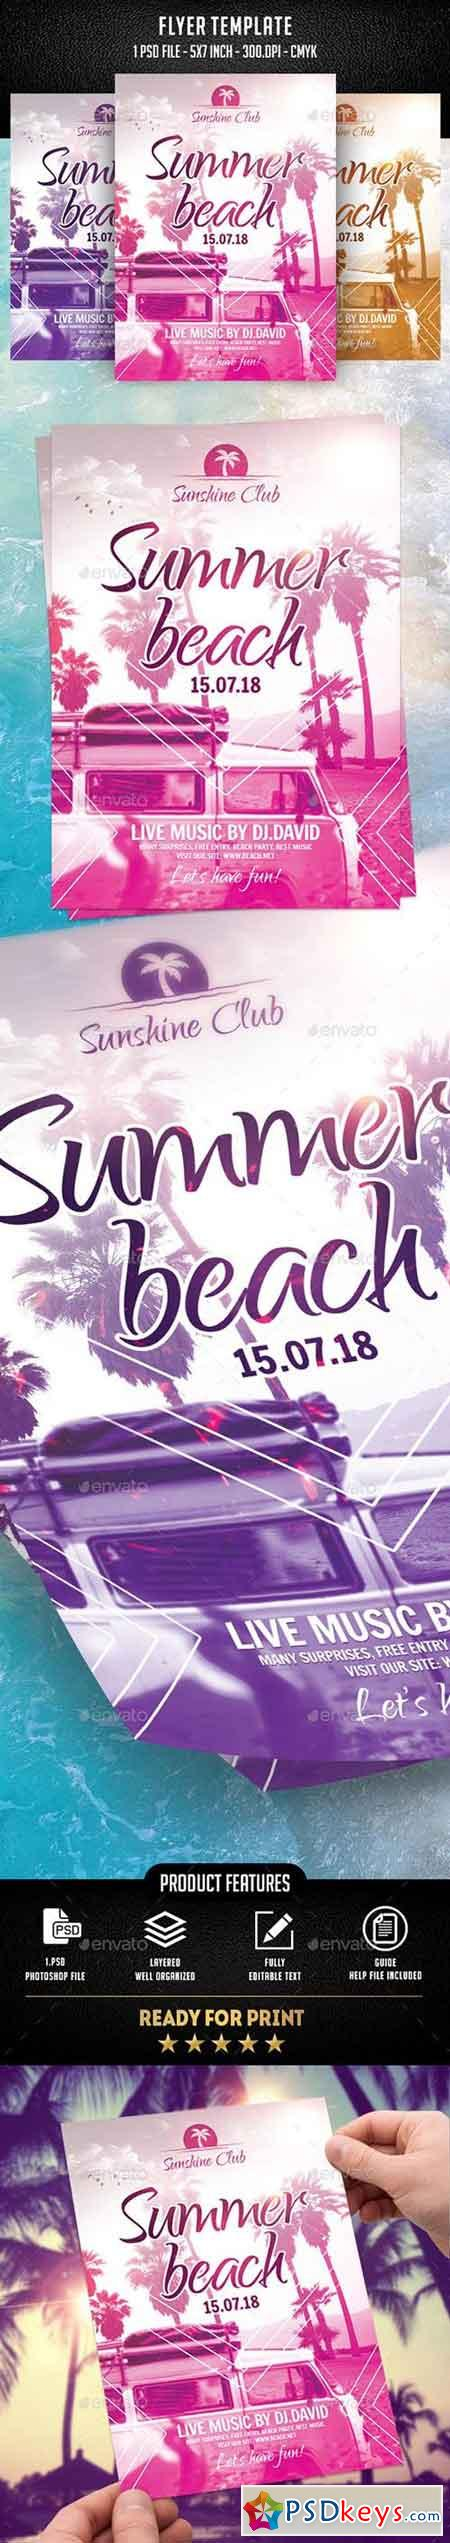 Summer Beach Flyer Template 21964666